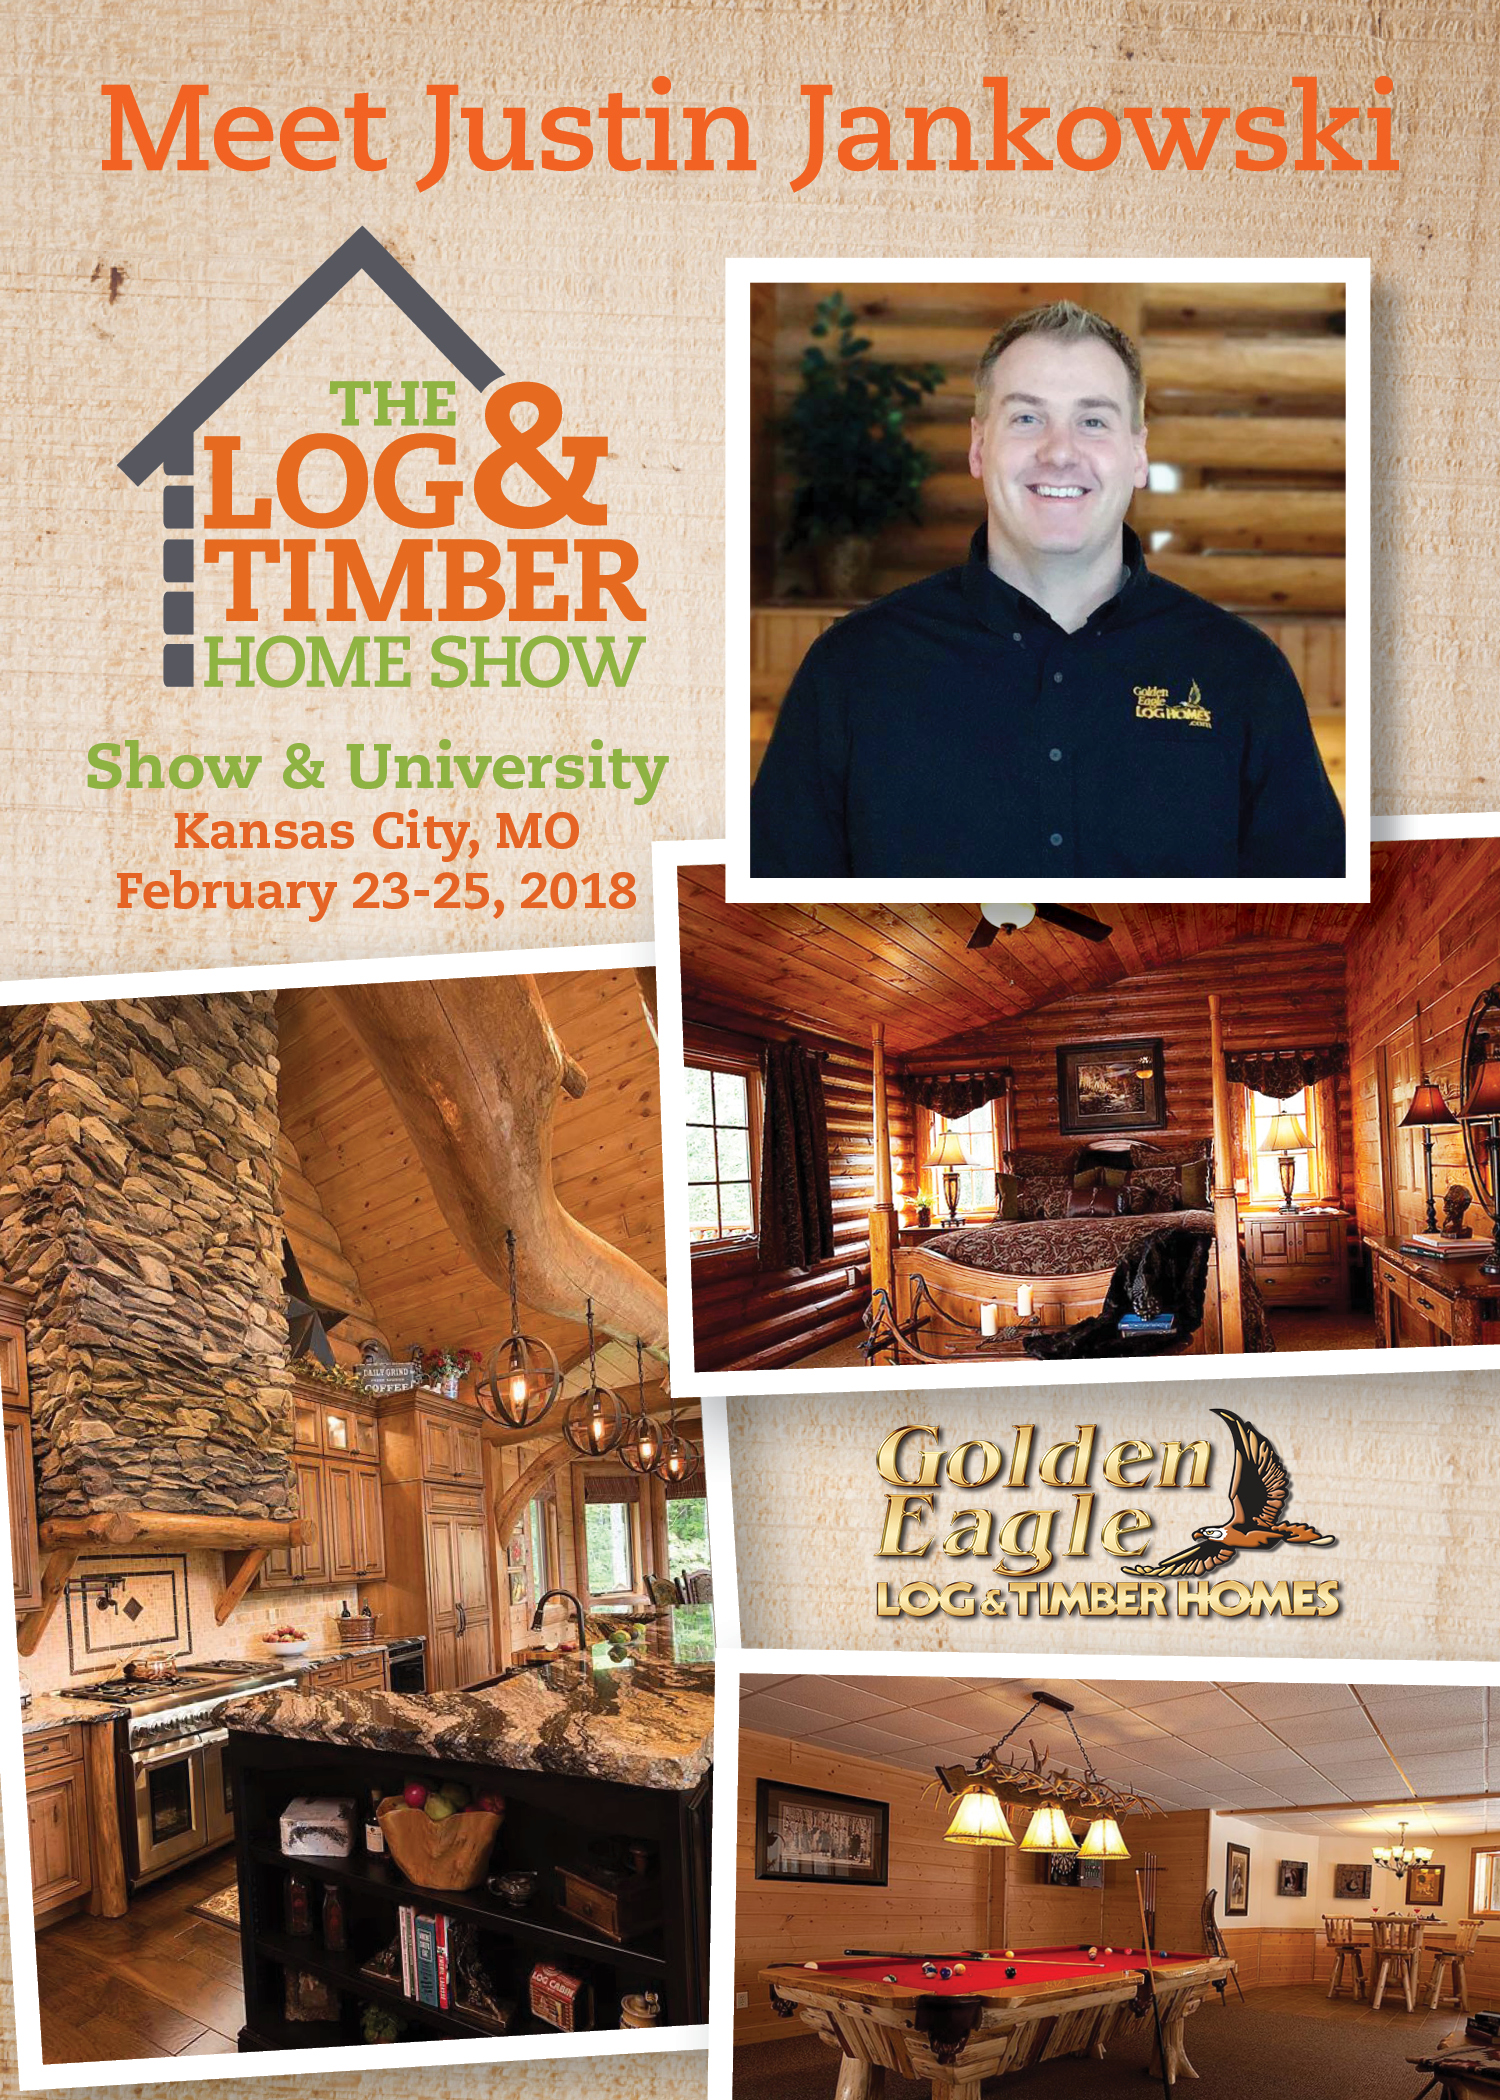 Justin Jankowski | Kansas City, MO 2018 | Log & Timber Home Show | Golden Eagle Log Homes | Workshop Spotlight | February 23-25, 2018